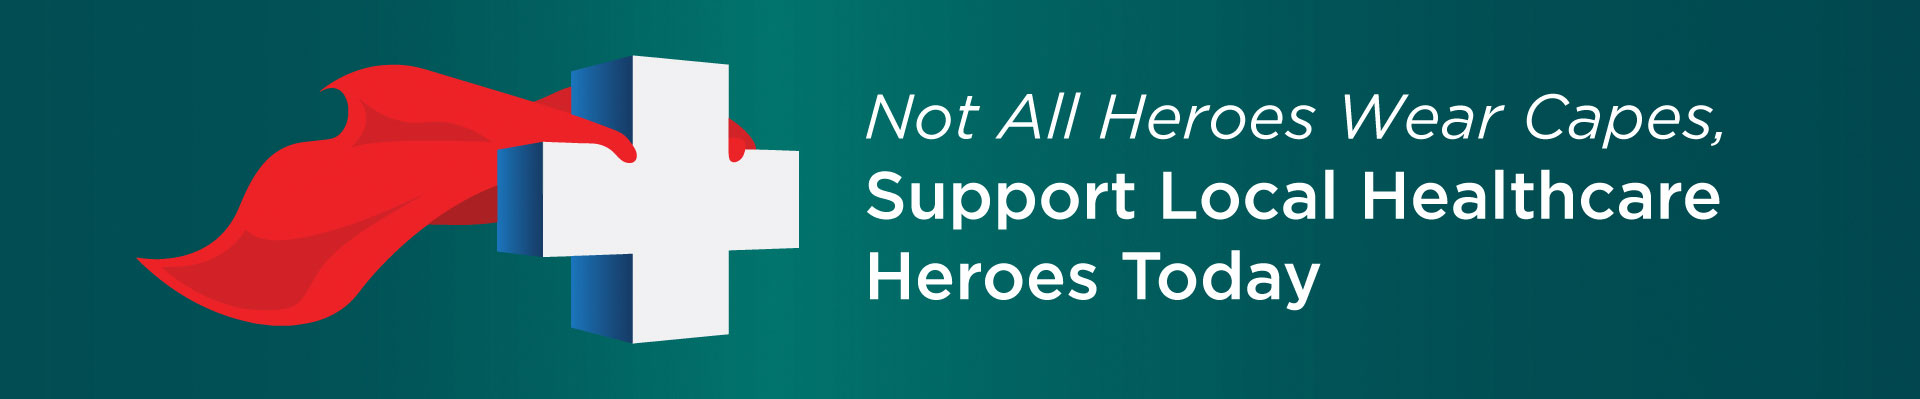 Not all heroes wear capes, Support Local Healthcare heroes Today.